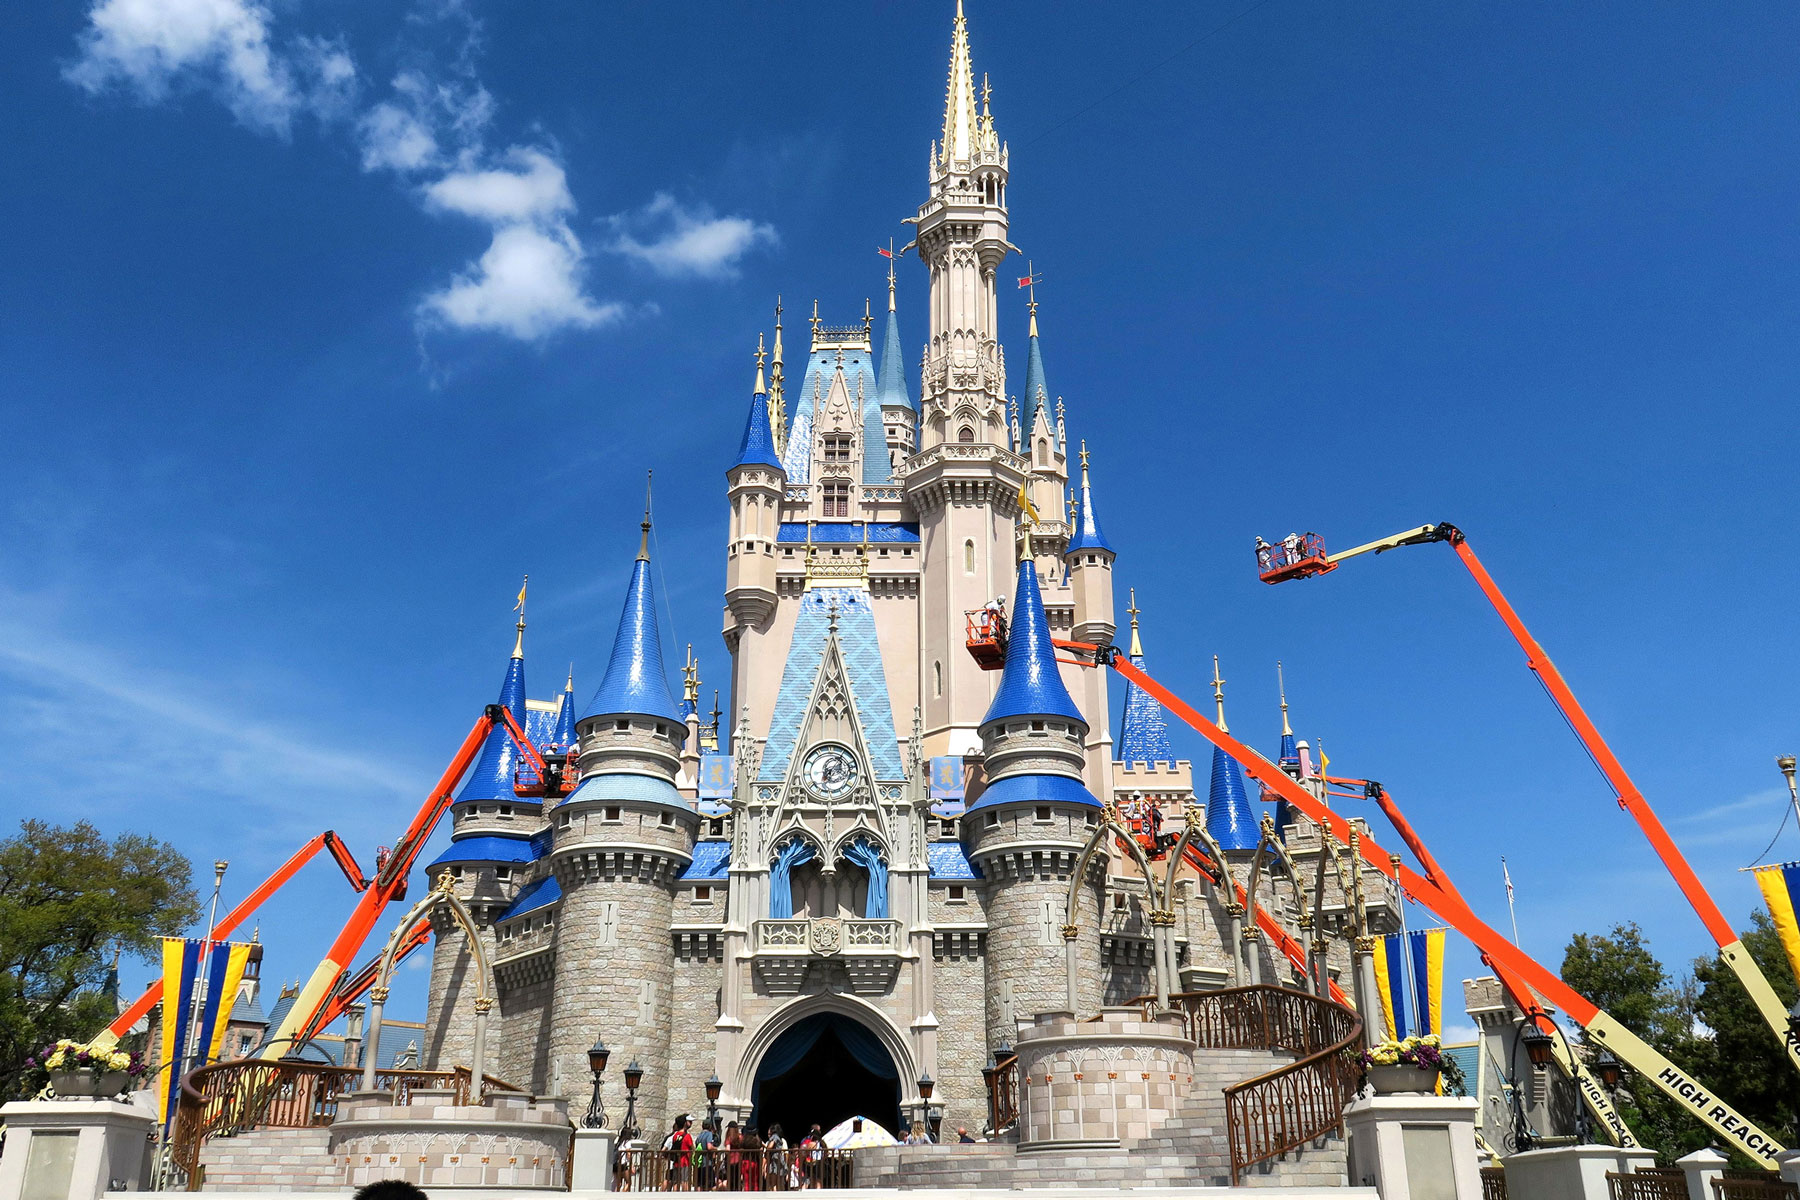 workers paint Cinderella Castle at Disney World